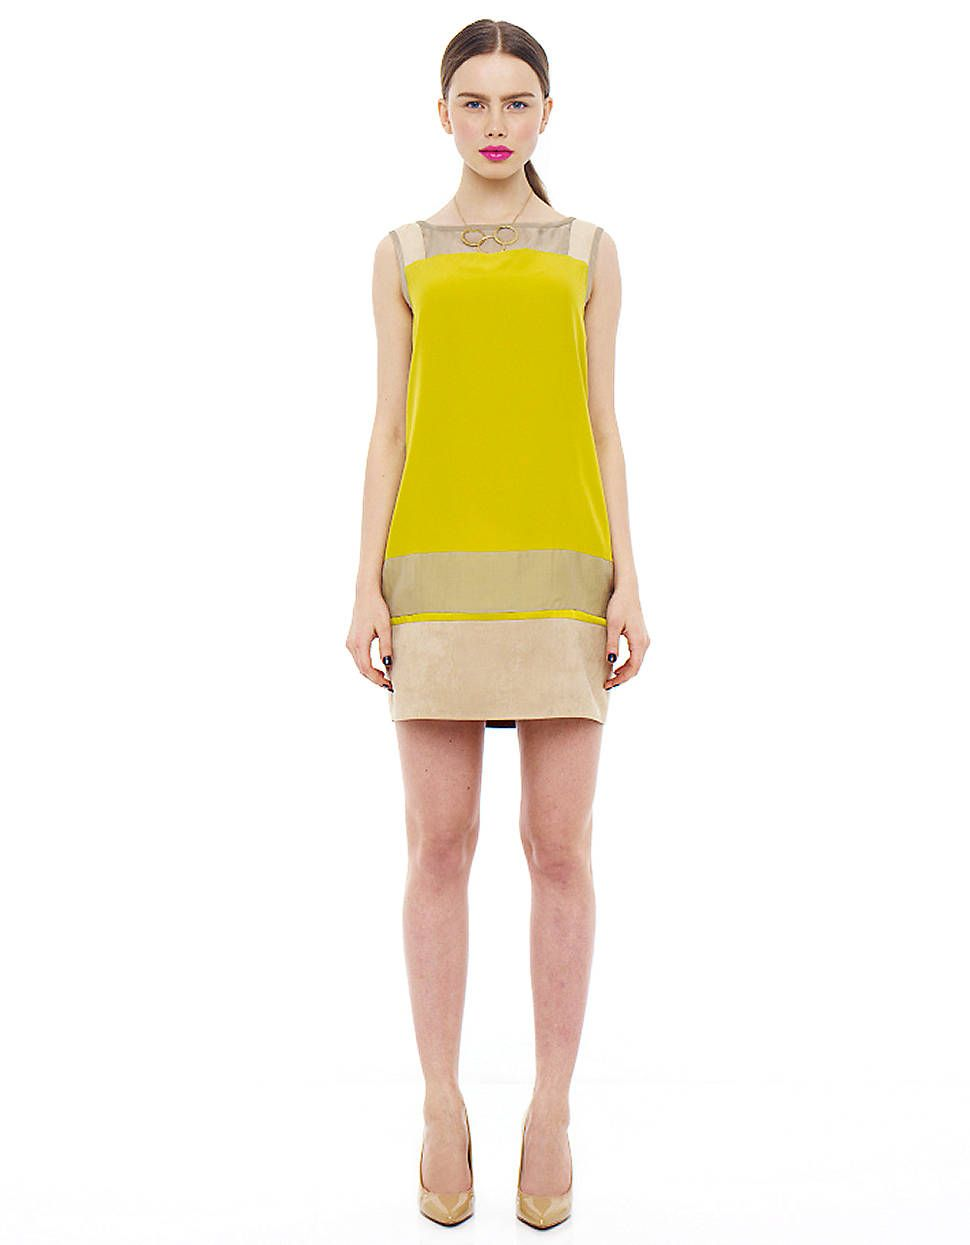 Lord taylor cocktail dresses - Fashion coctail dress